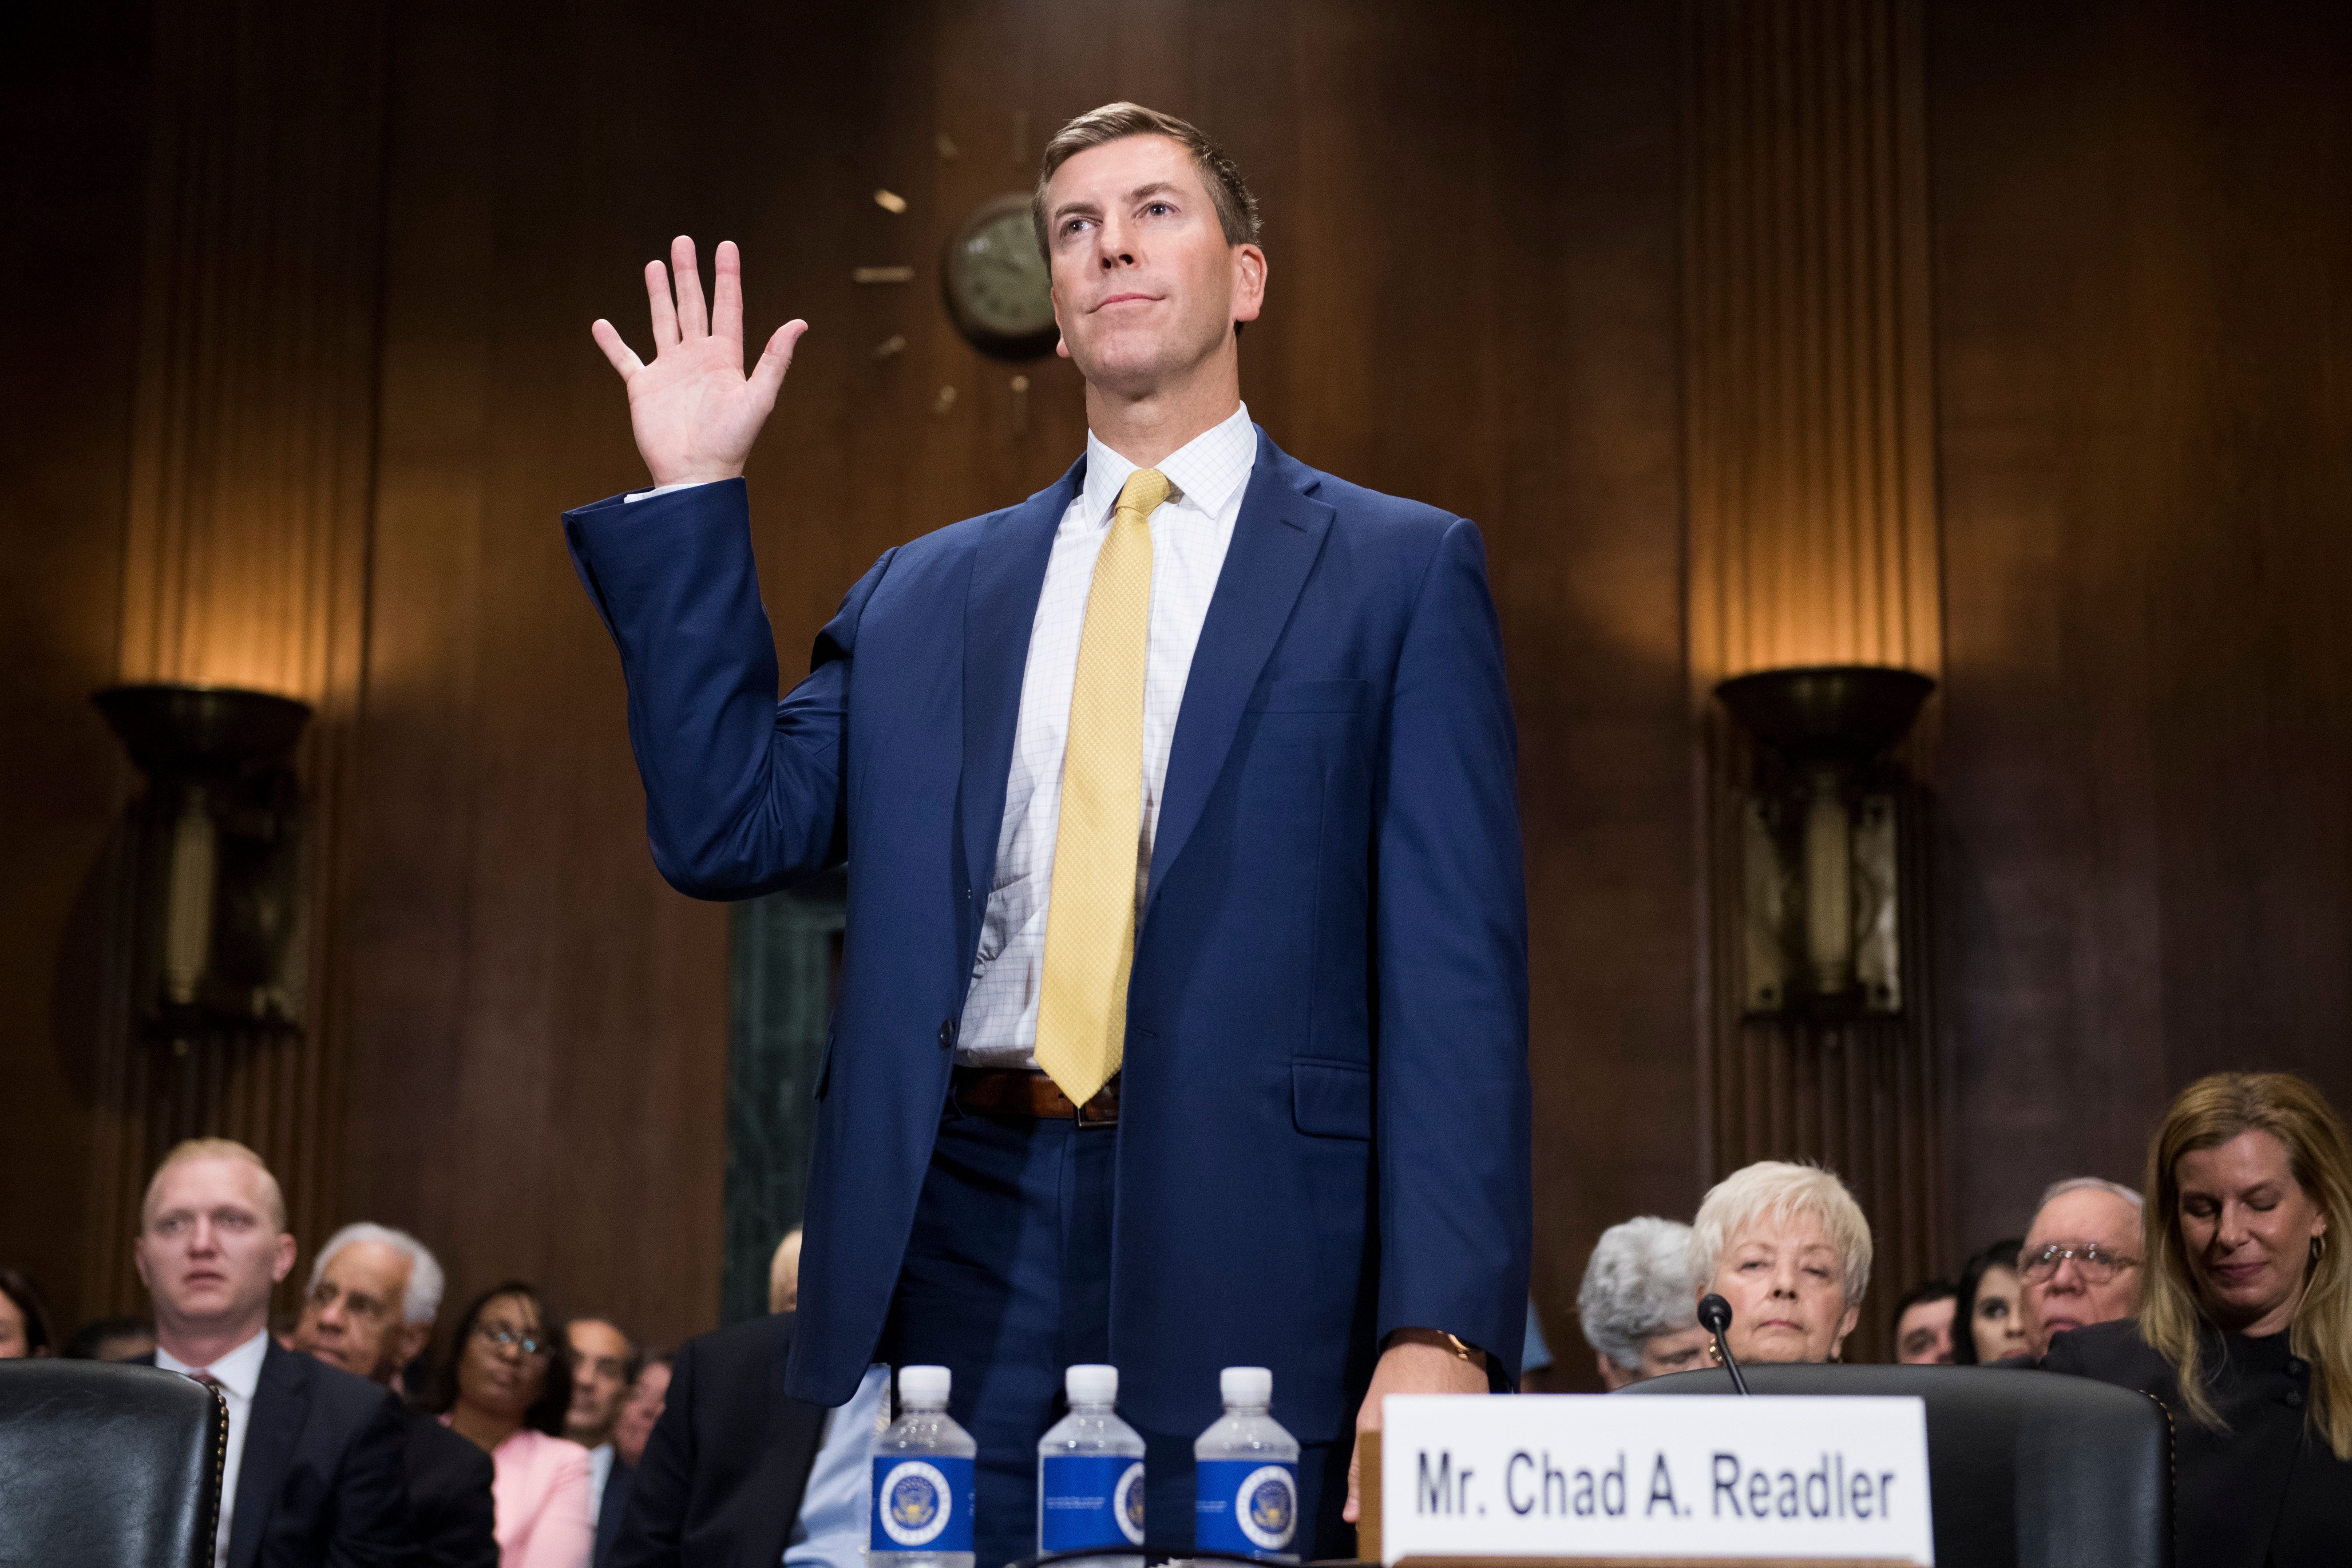 Chad Readler defended some of President Donald Trump's most egregious legal attacks on LGBTQ rights, Muslims, voting rights a